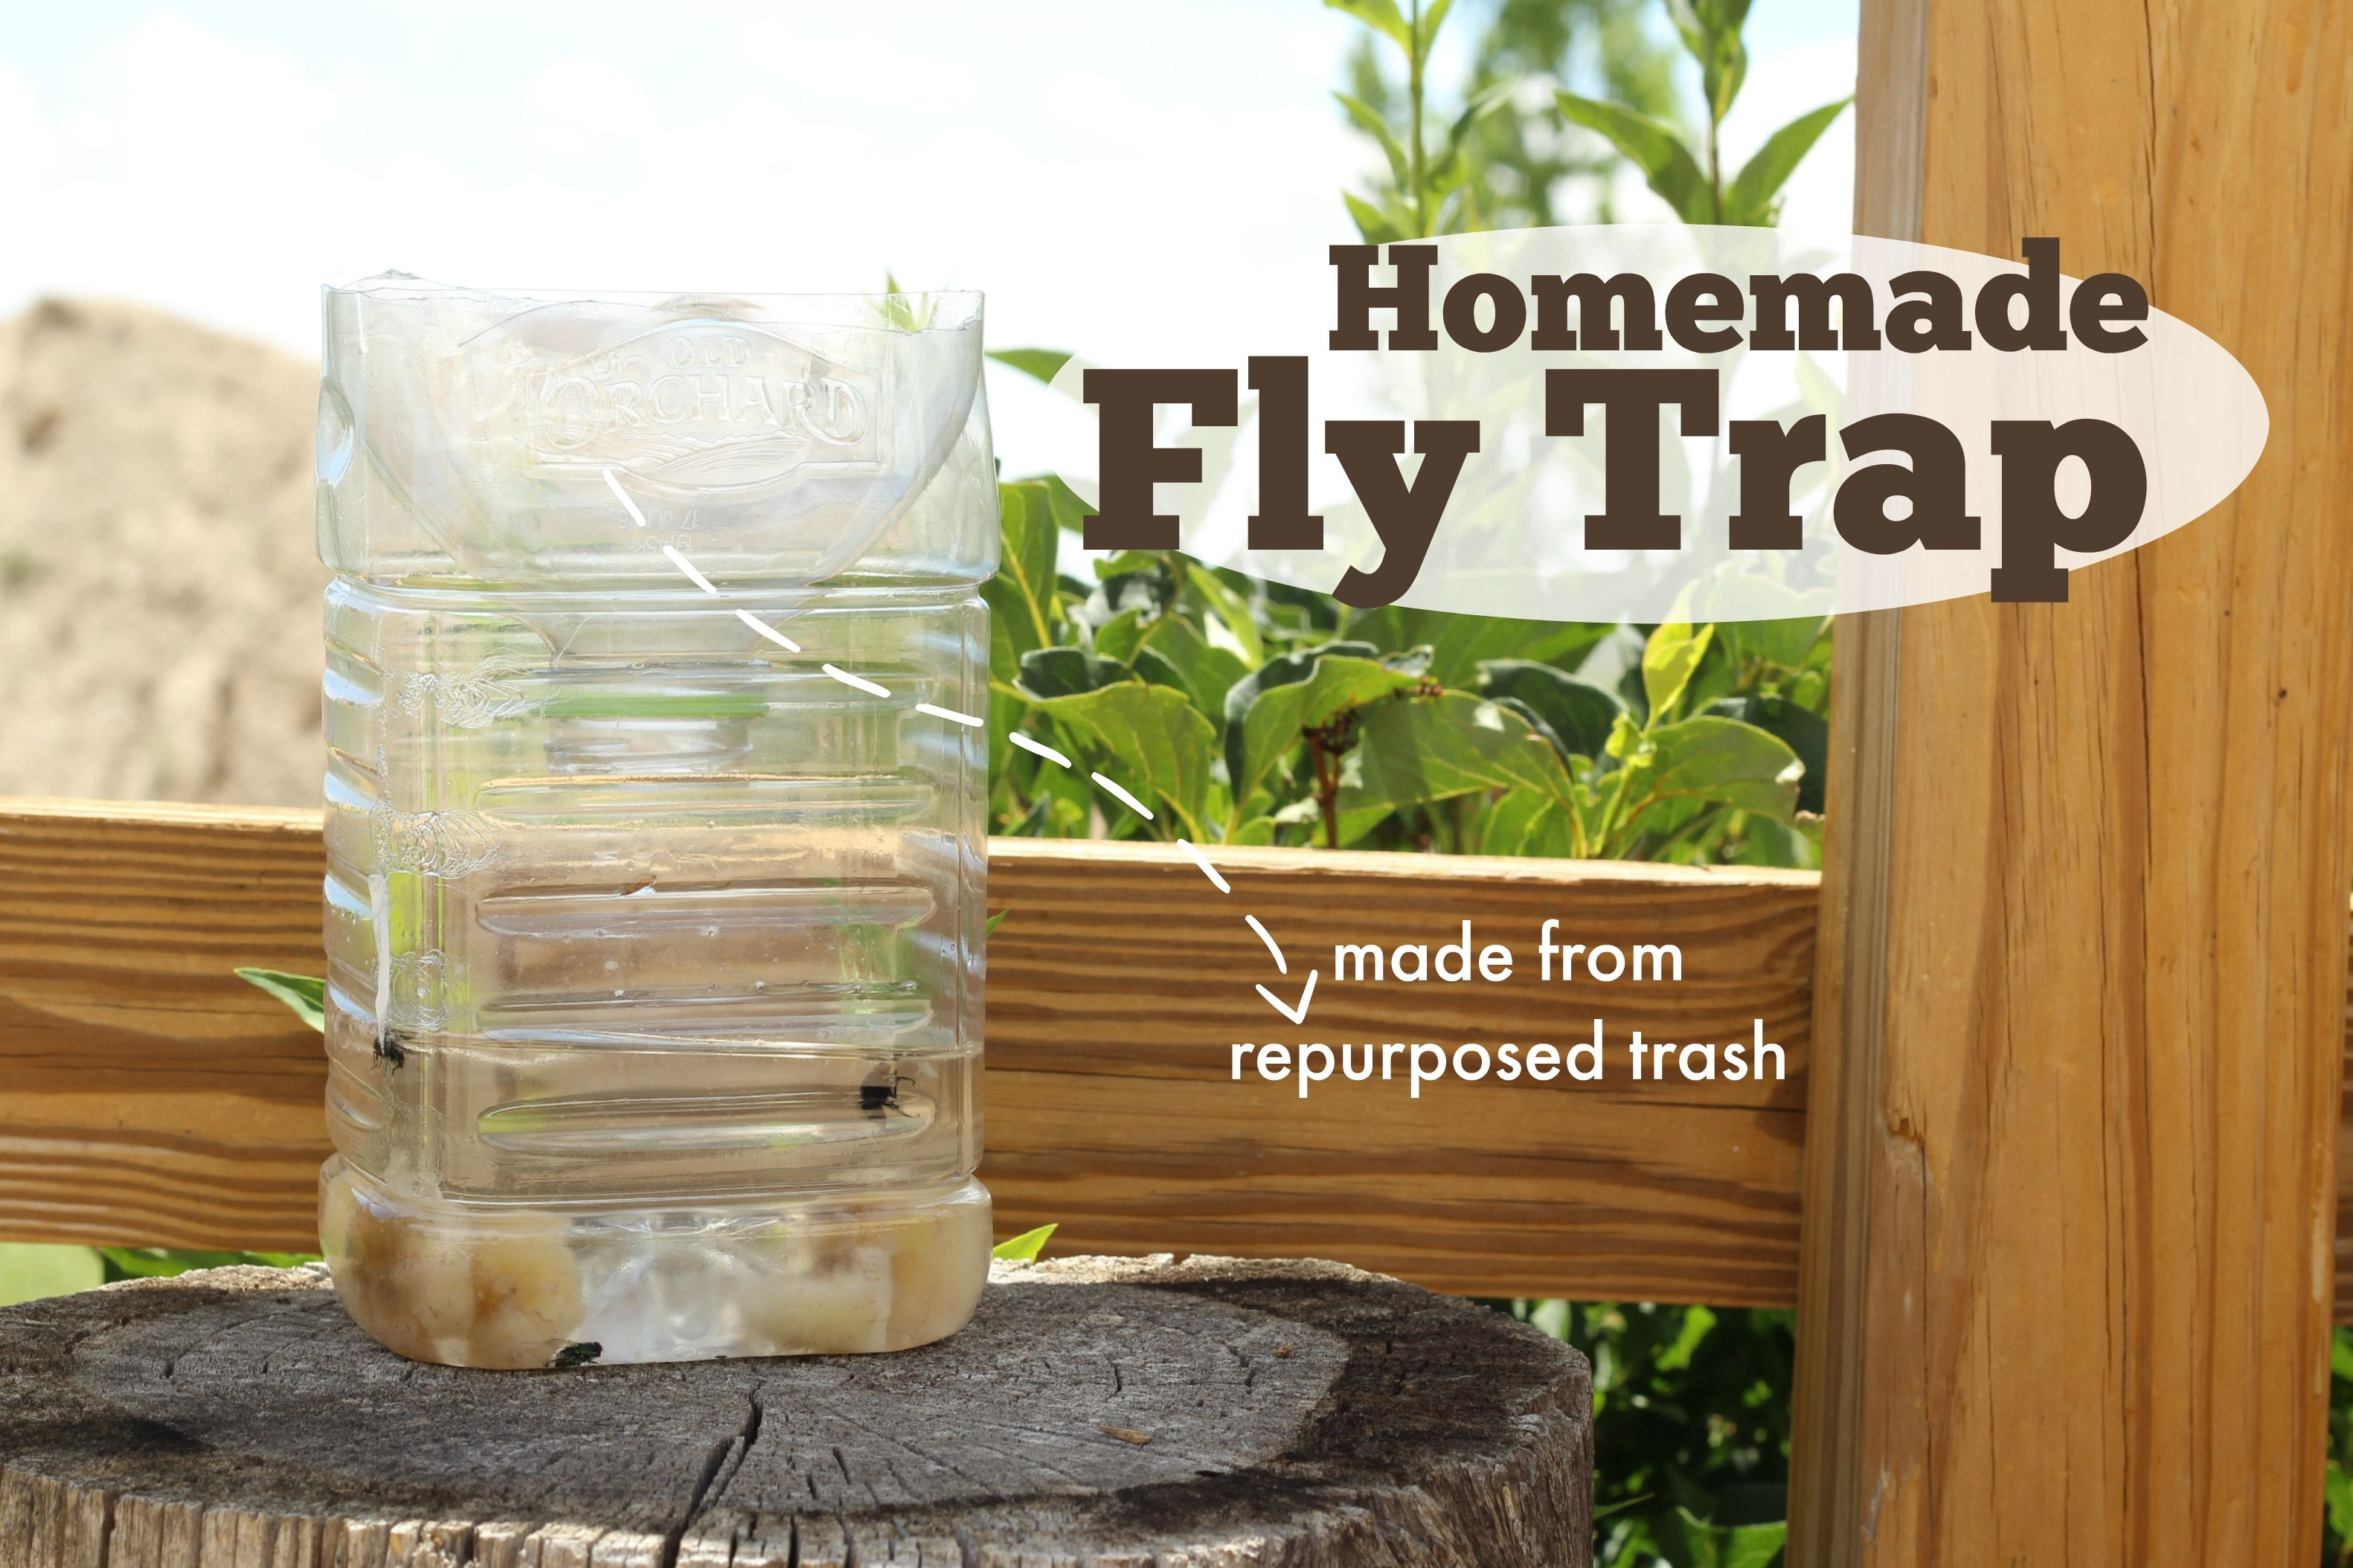 Homemade Fly Trap Homemade fly traps, Fly traps, House